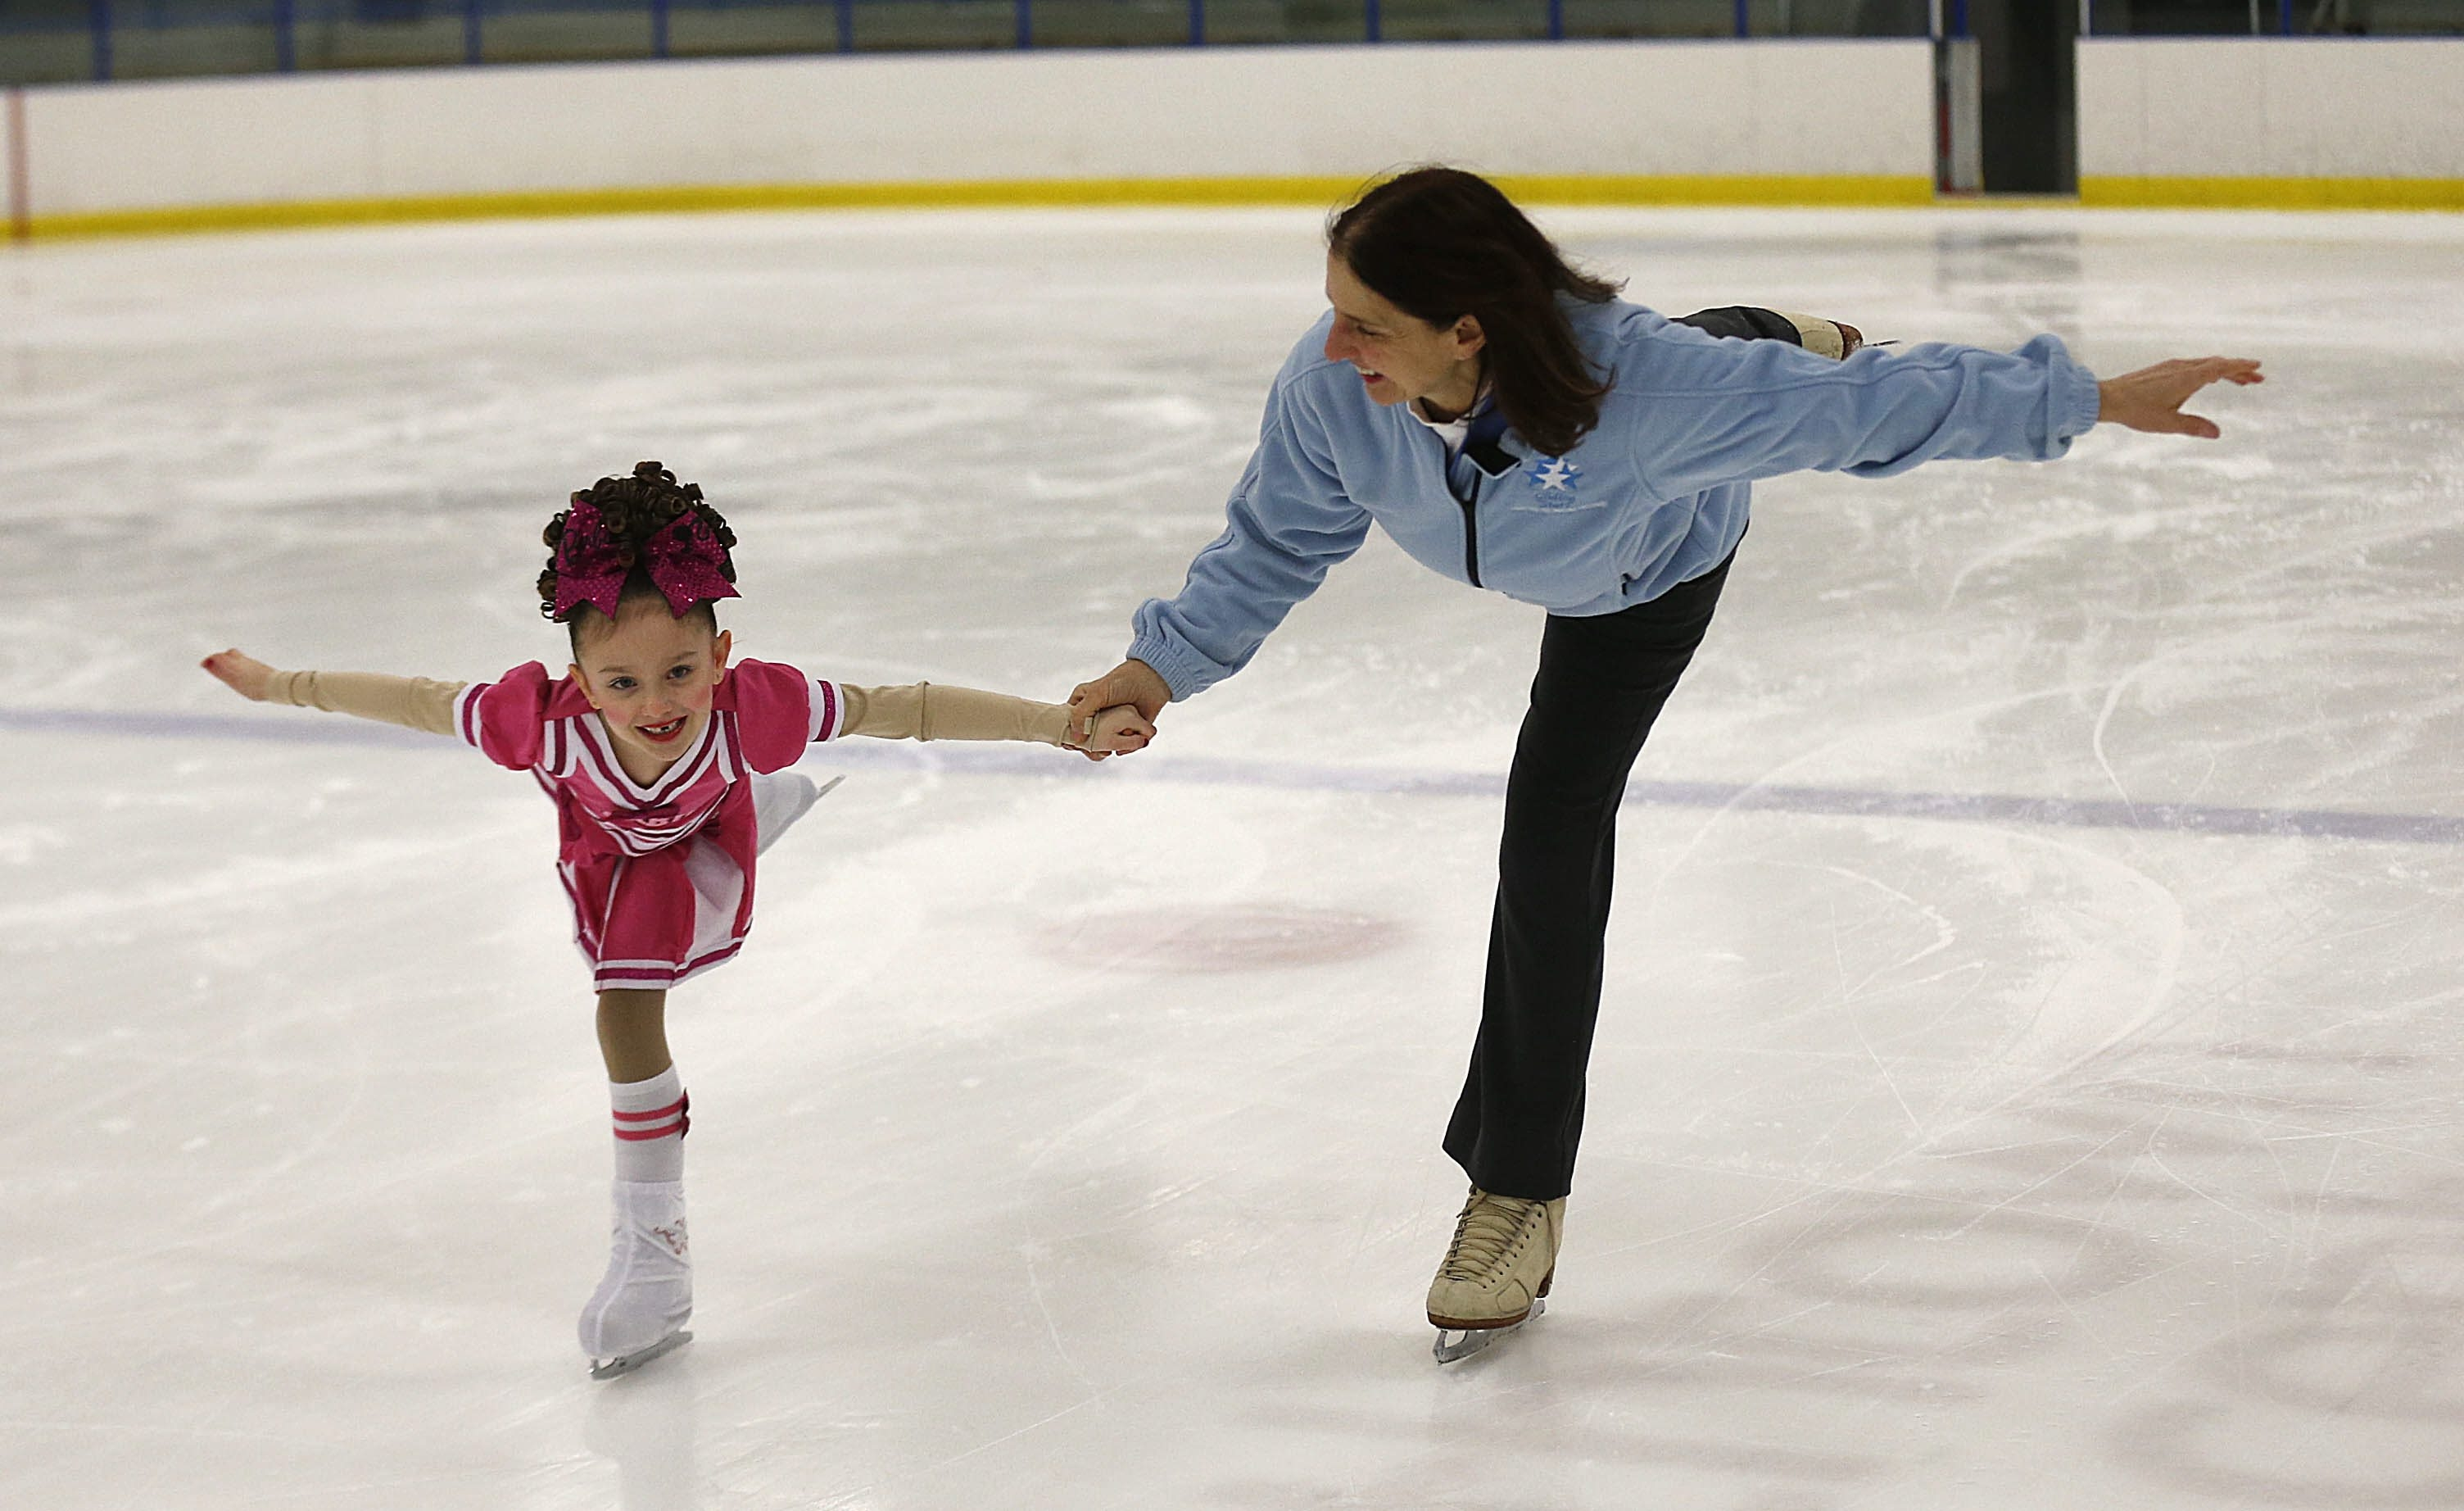 Elizabeth O'Donnell works with Riley Vaccaro, 6, for upcoming performance of Gliding Stars. They were on the rink at the Northtown Center in Amherst.